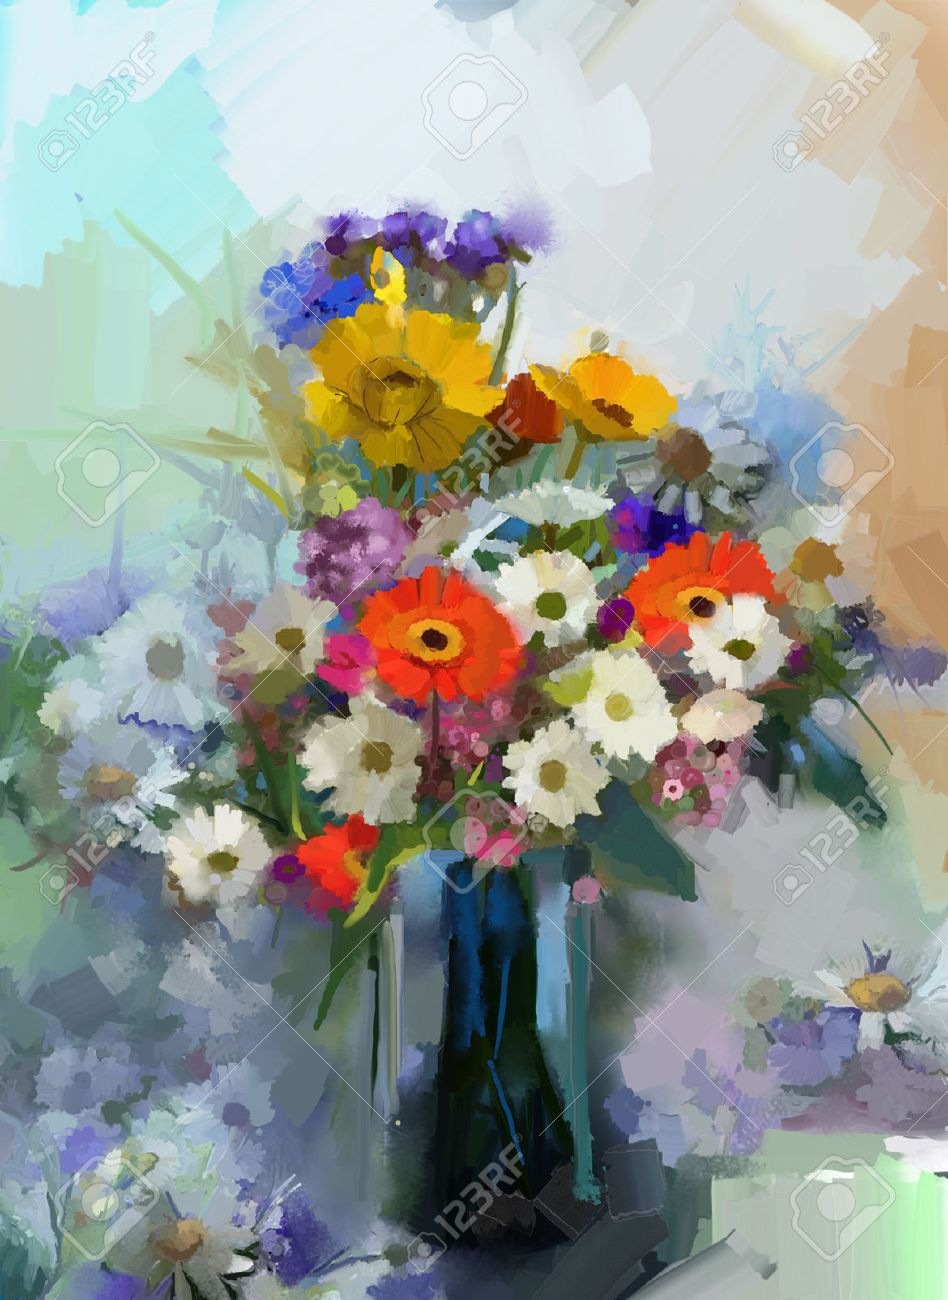 Vase With Still Life A Bouquet Of Flowers Oil Painting Stock Photo